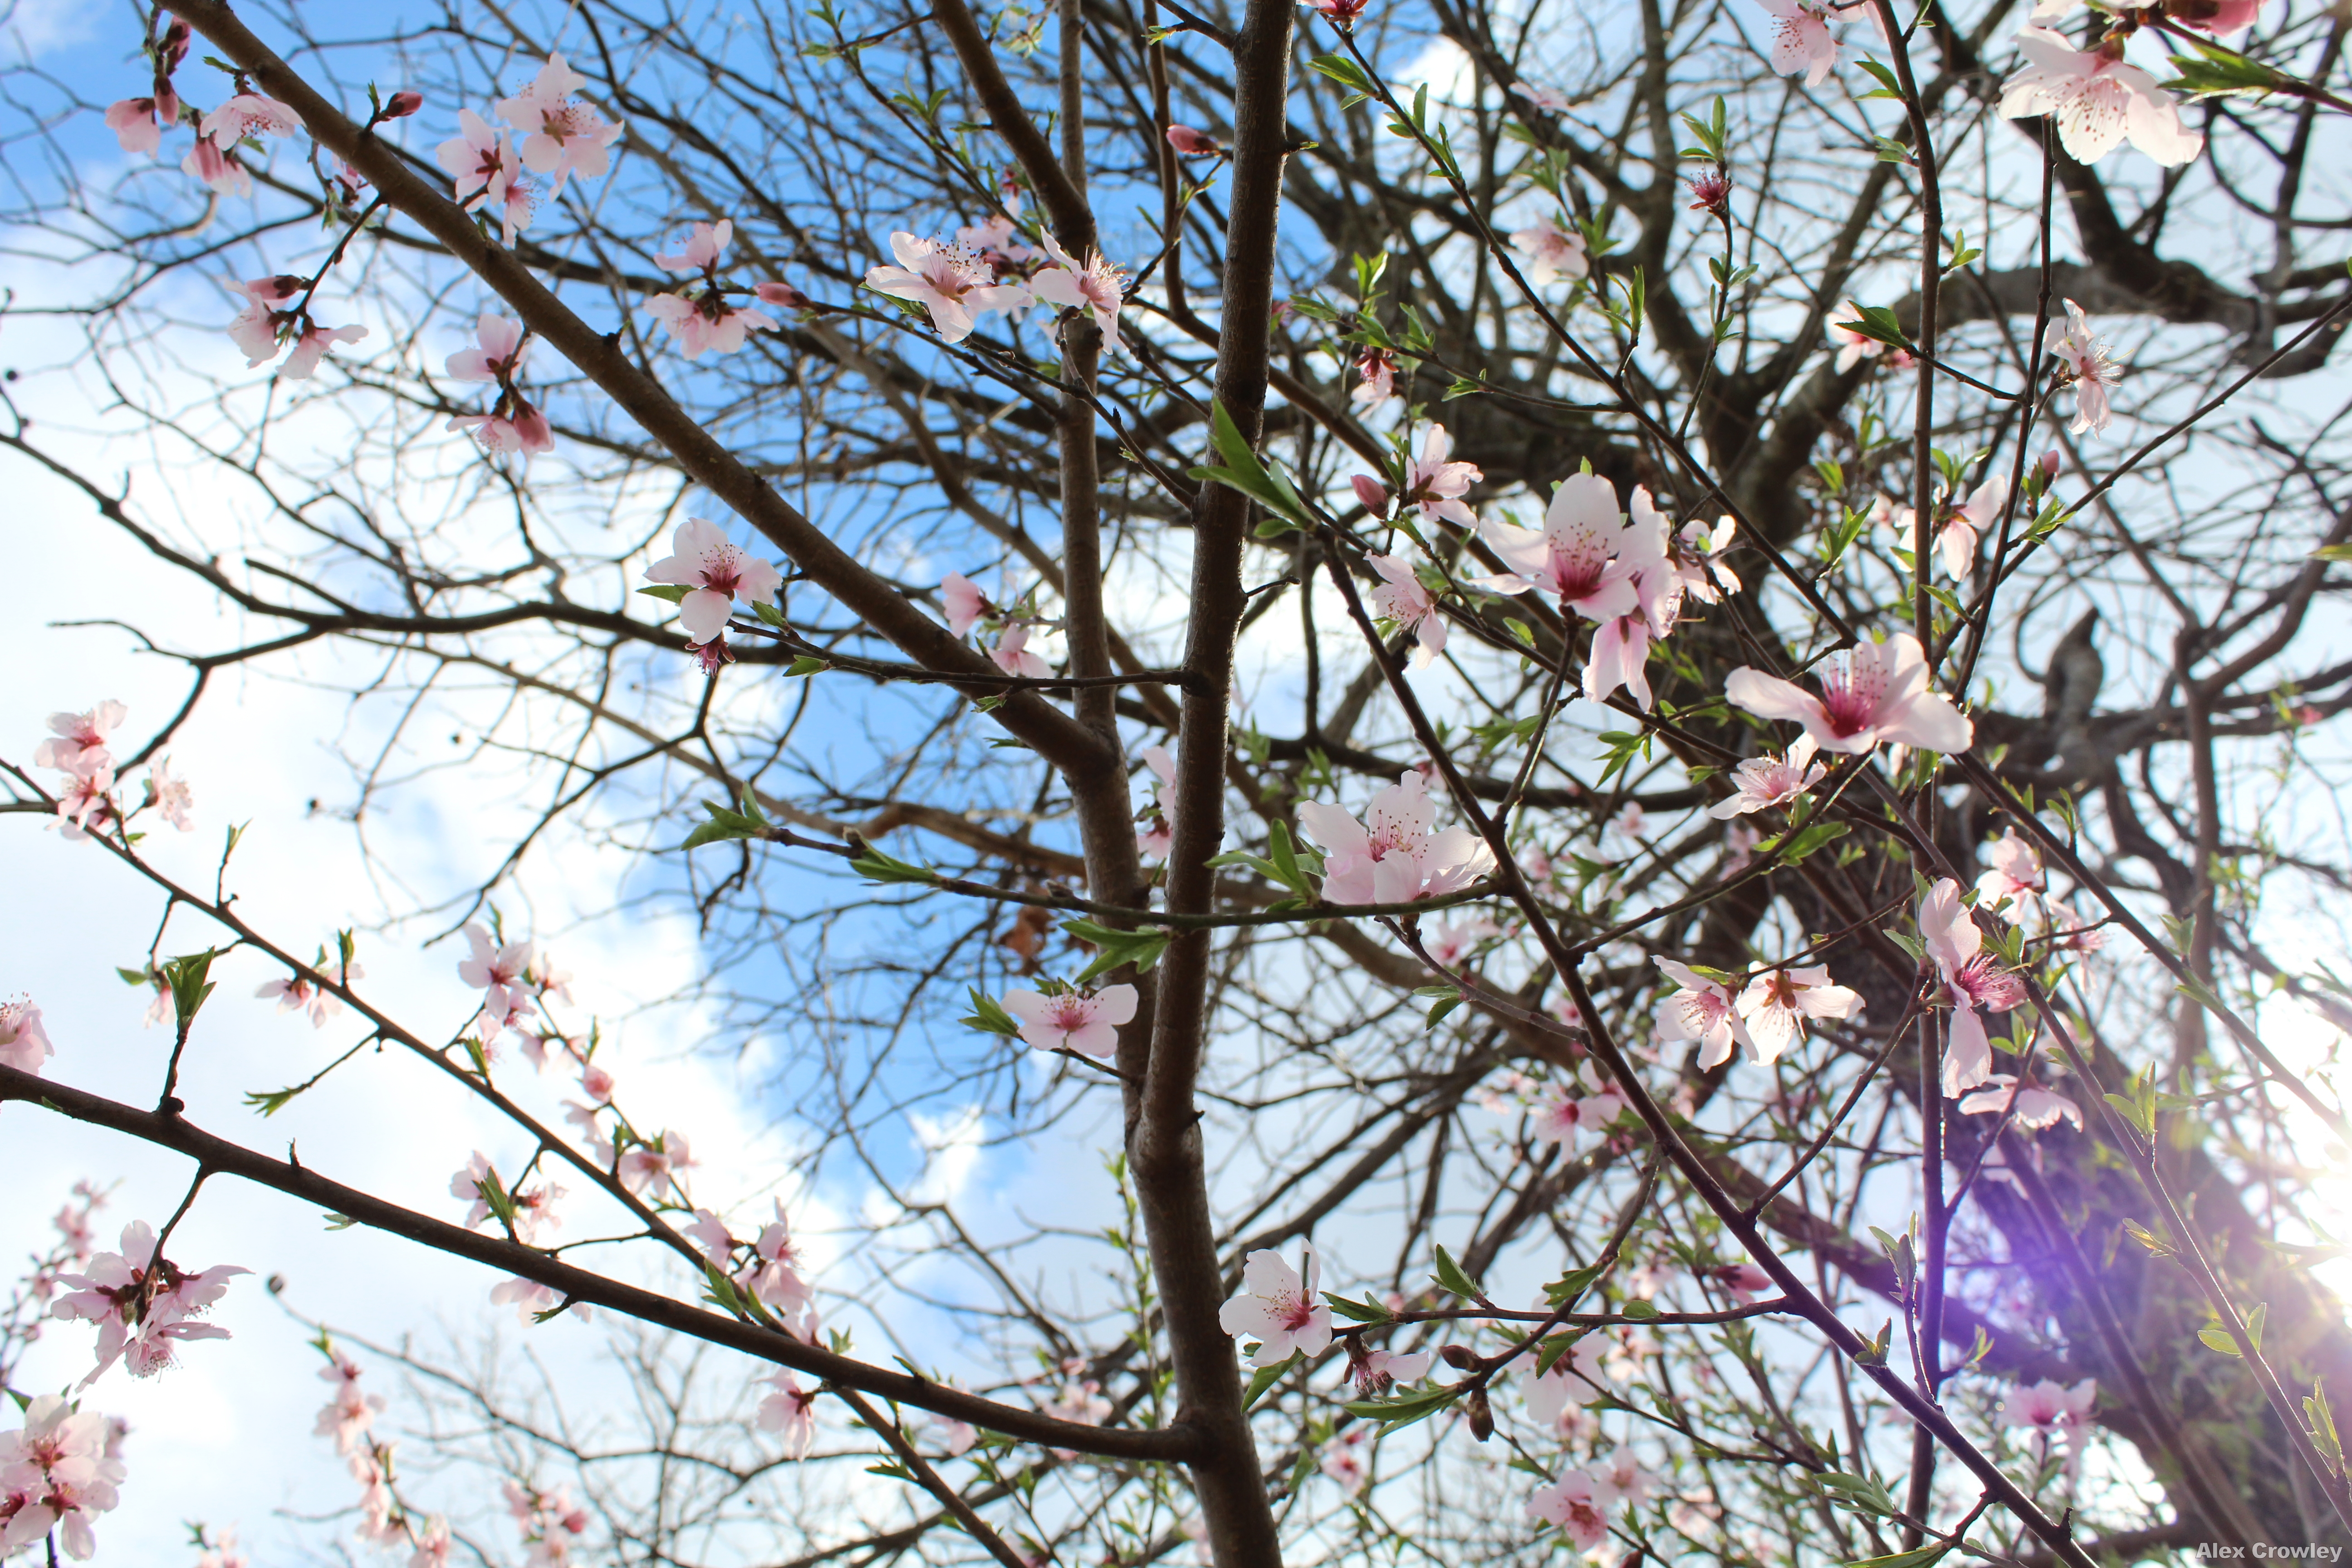 First day of Spring - Wild Cherry Blossoms by PhotographerAlexC